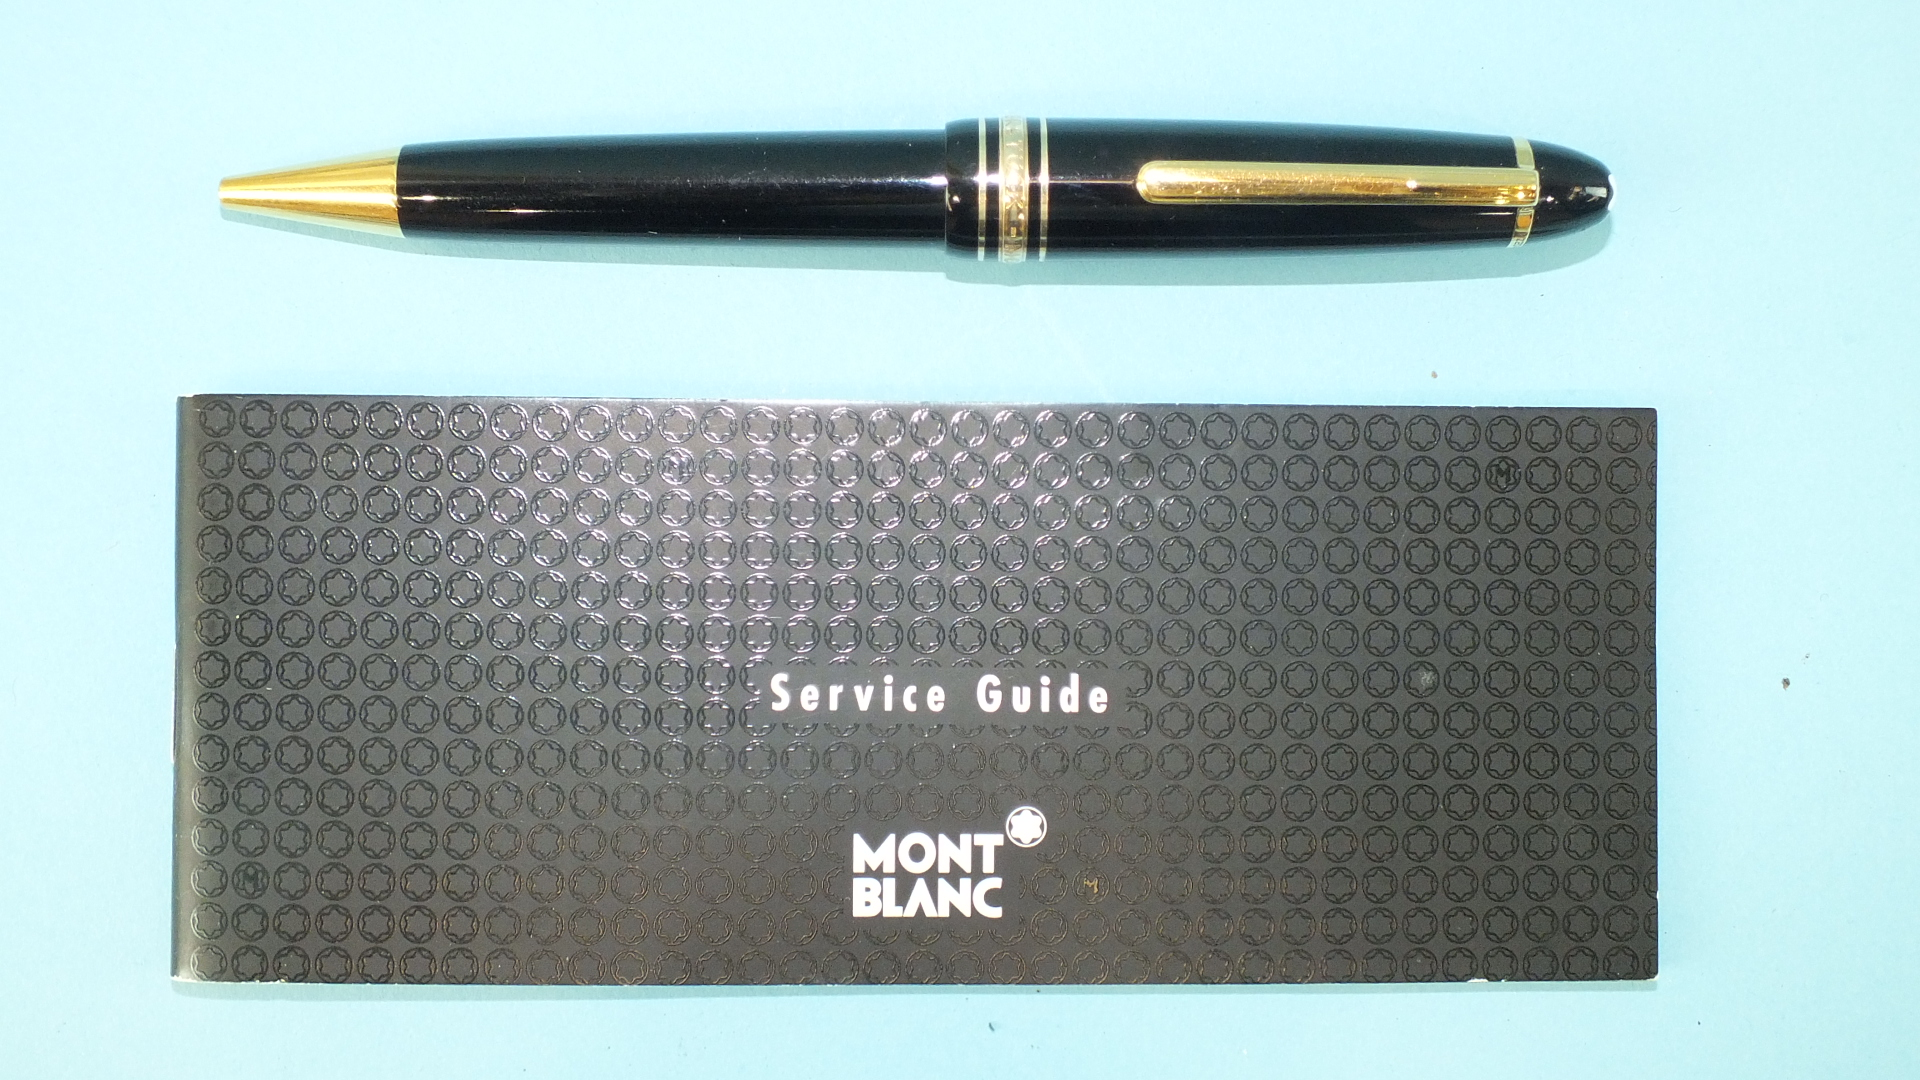 Lot 121 - A Mont Blanc Meisterstück ballpoint pen numbered HZ2042068, with service guide.